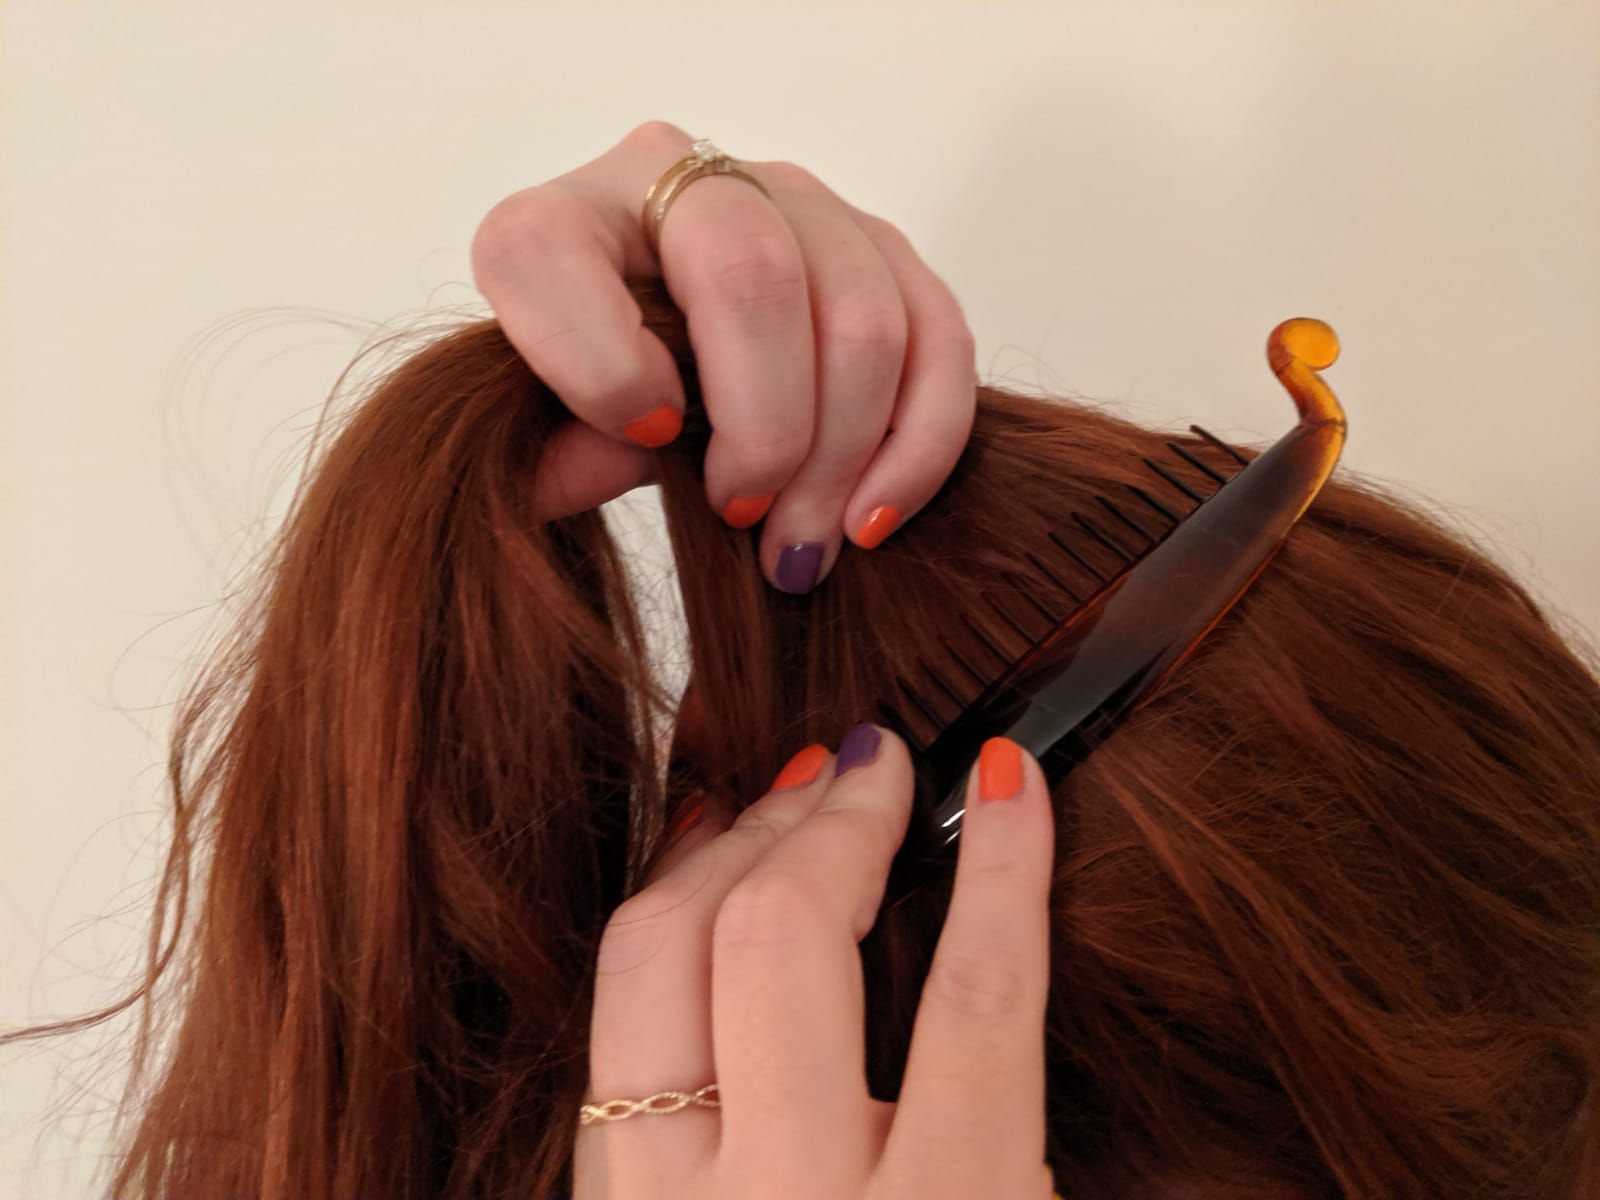 Red-haired woman pushing a banana clip into her hair